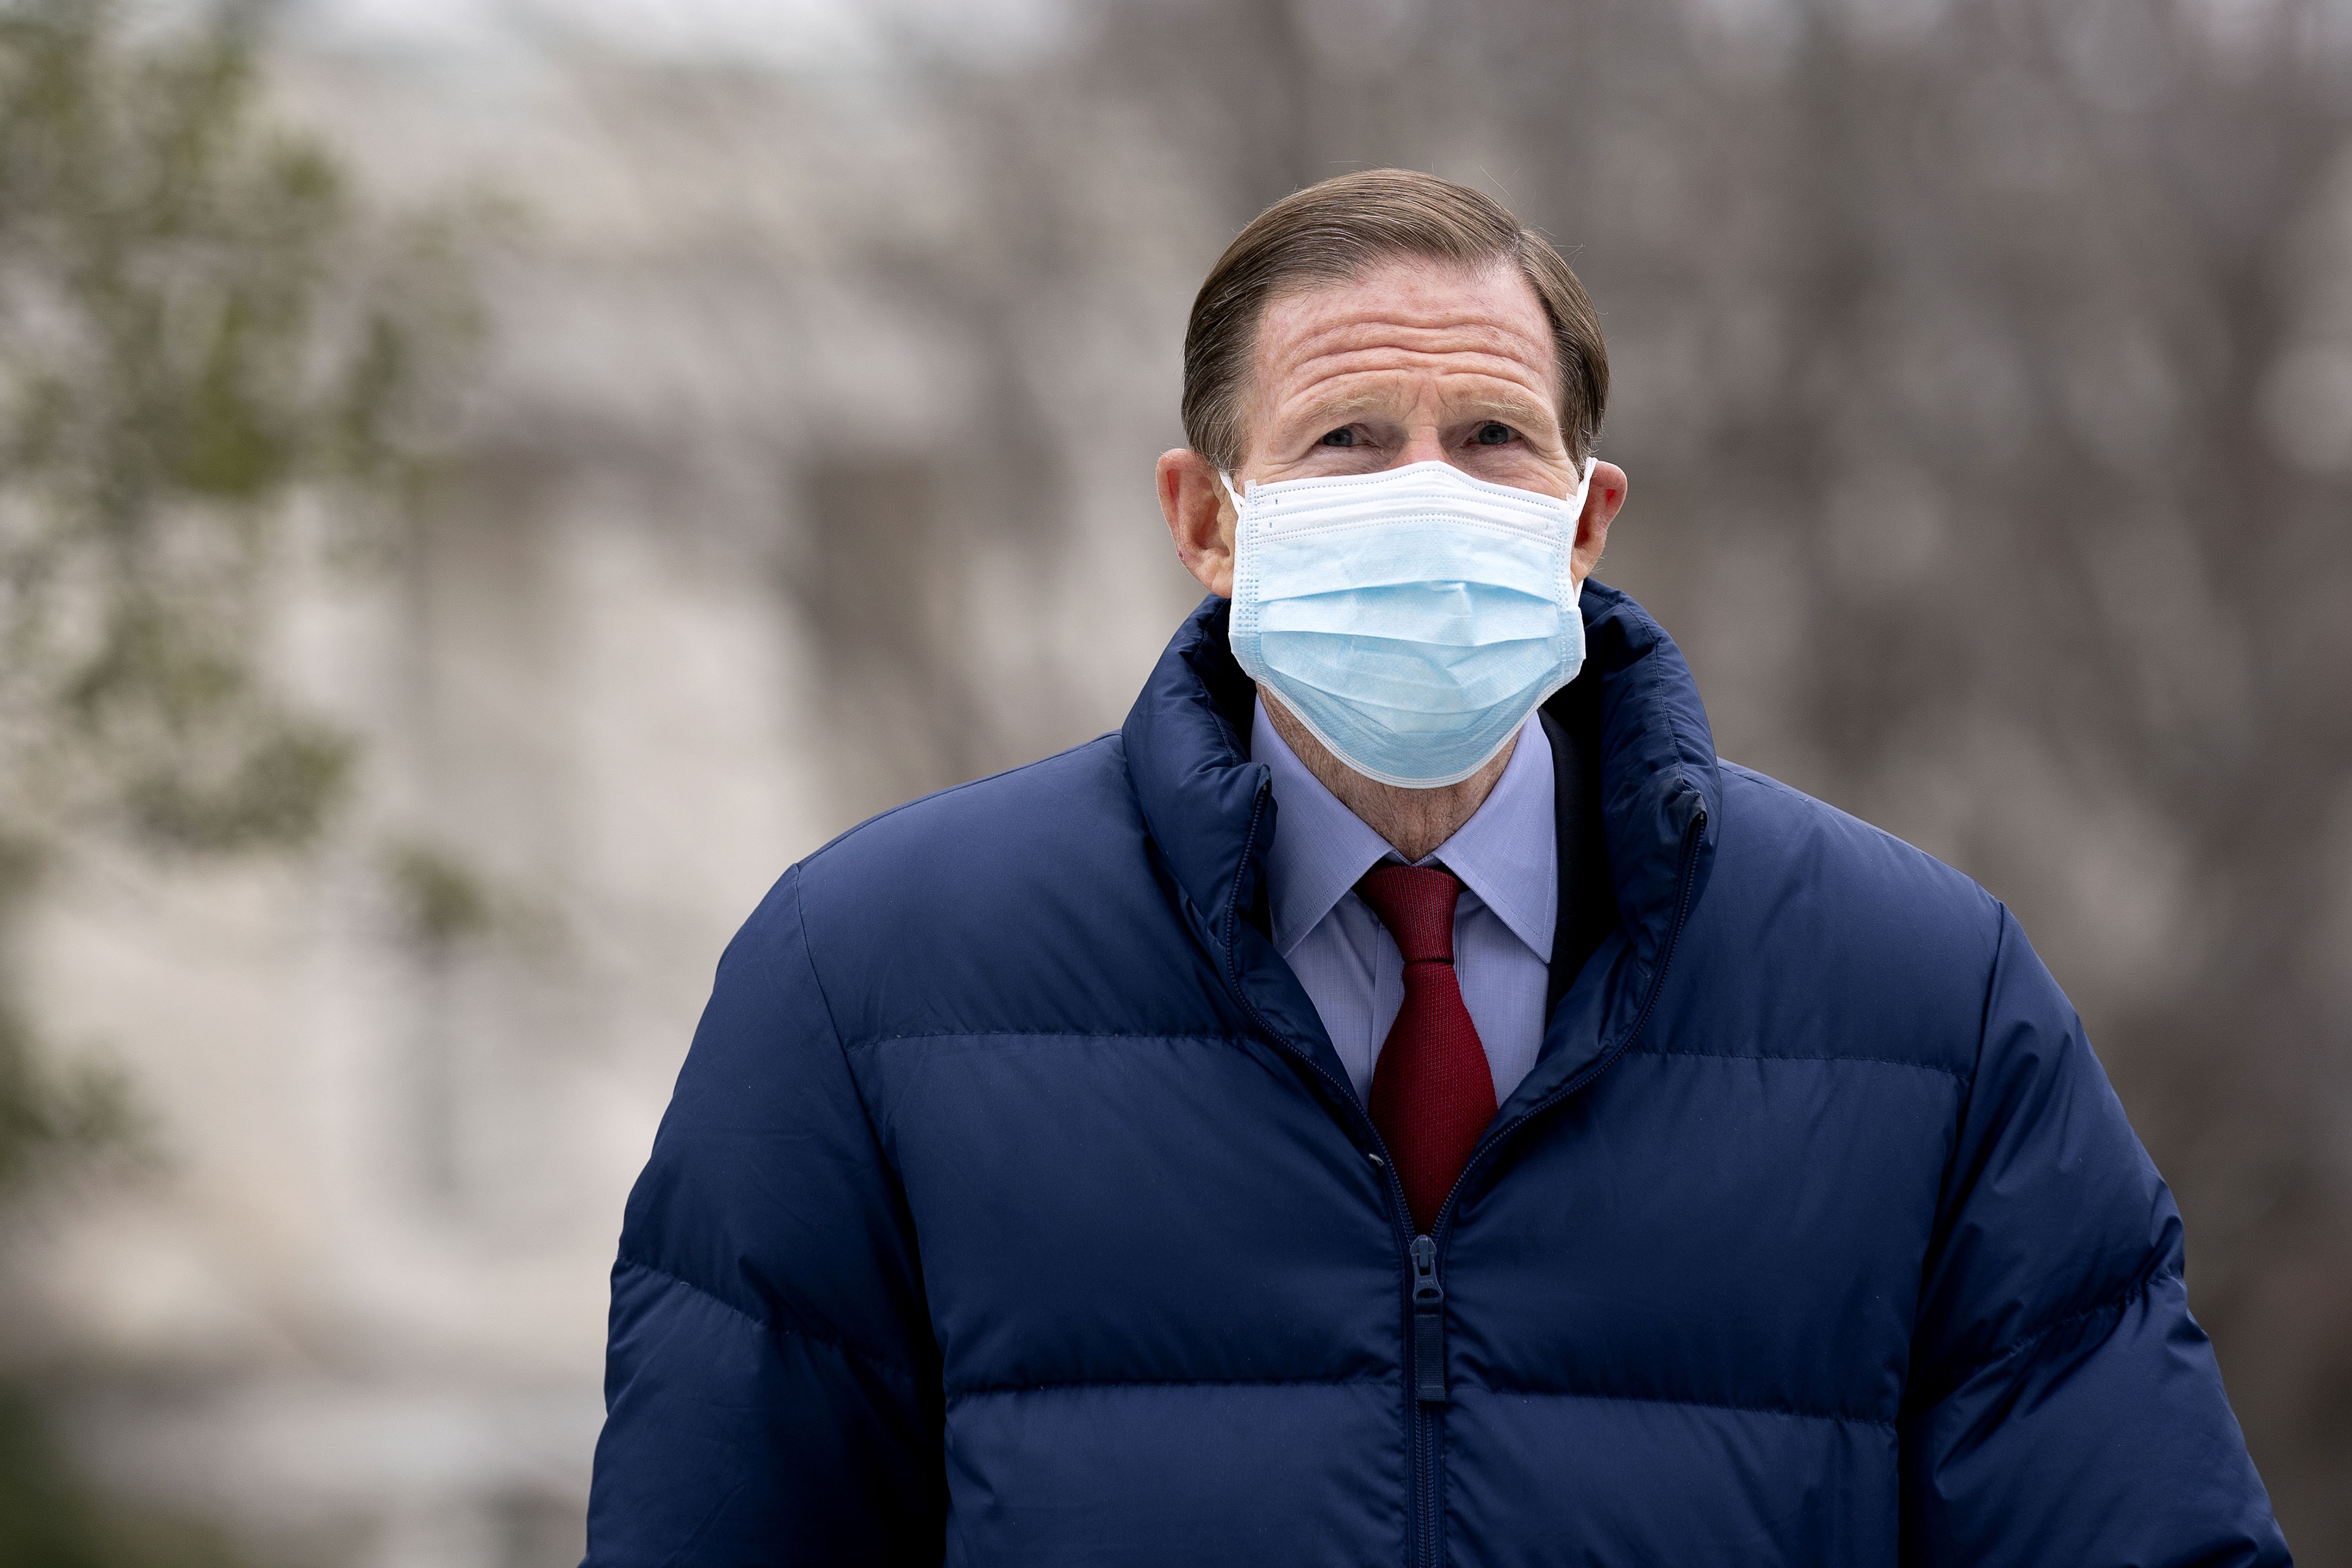 US Sen. Richard Blumenthal arrives at the Capitol in Washington, DC, on February 12.